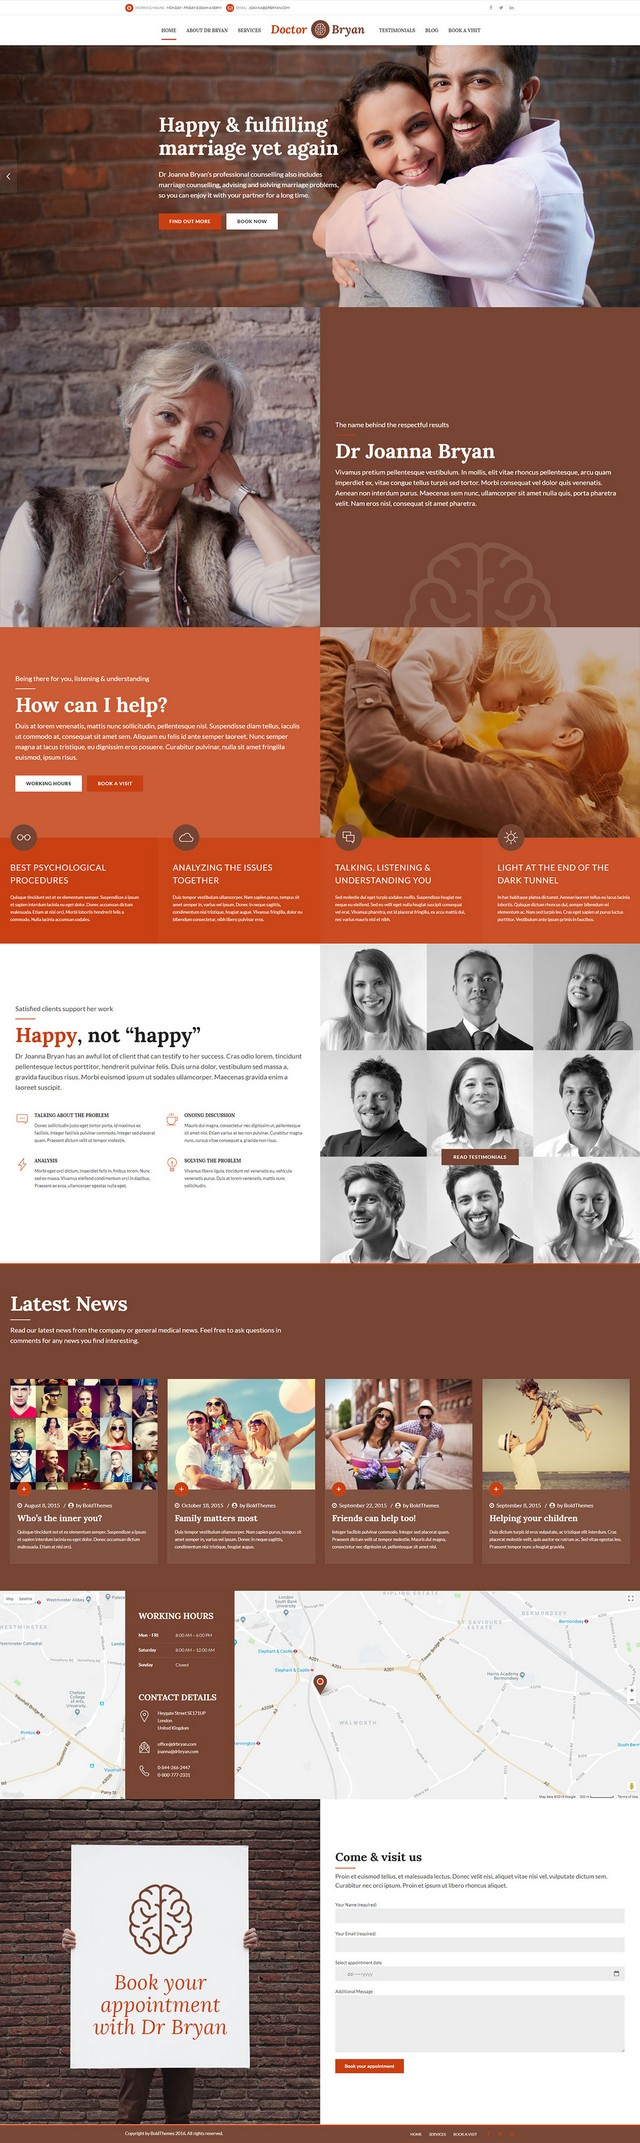 health and medical wordpress theme Medicare homepage layout for Pshychiatrist